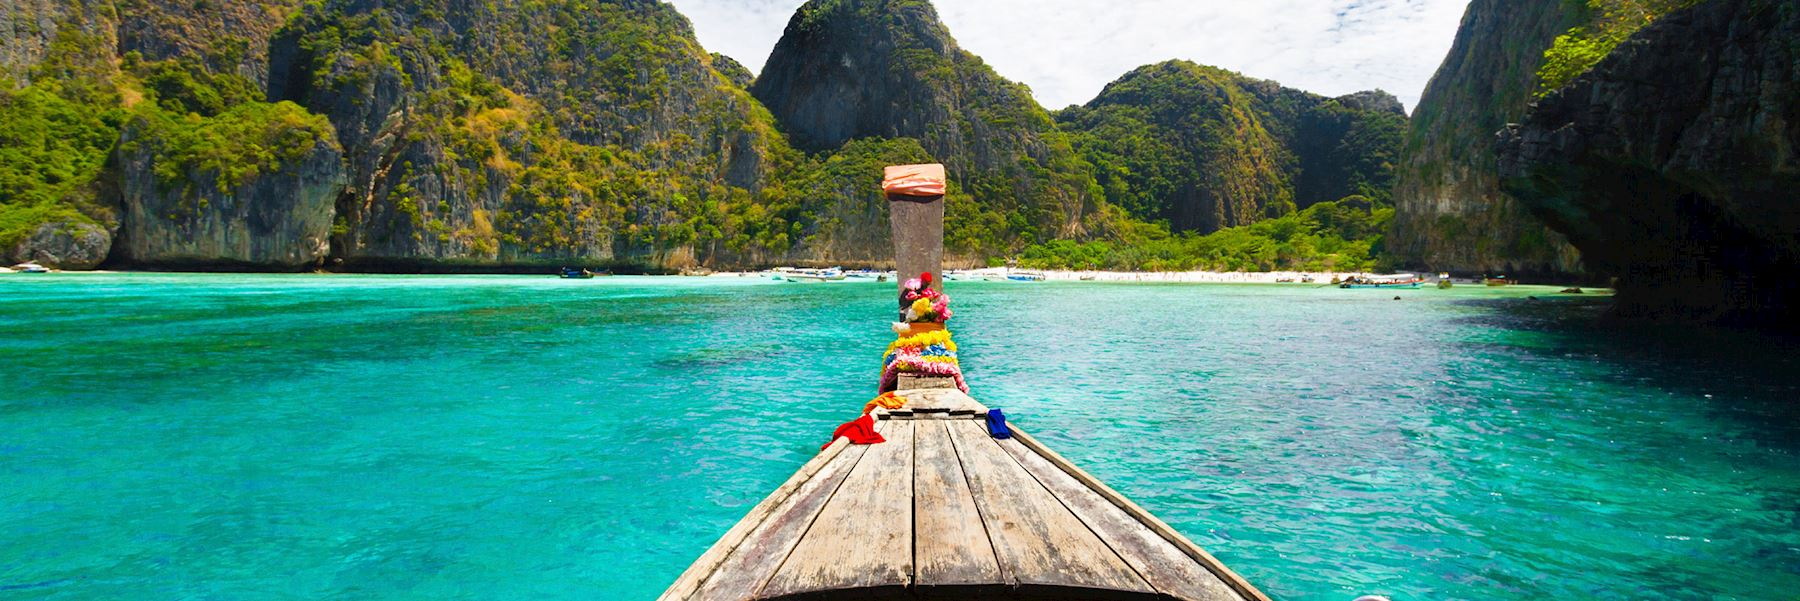 Thailand Itinerary Ideas Audley Travel - Vacation to thailand